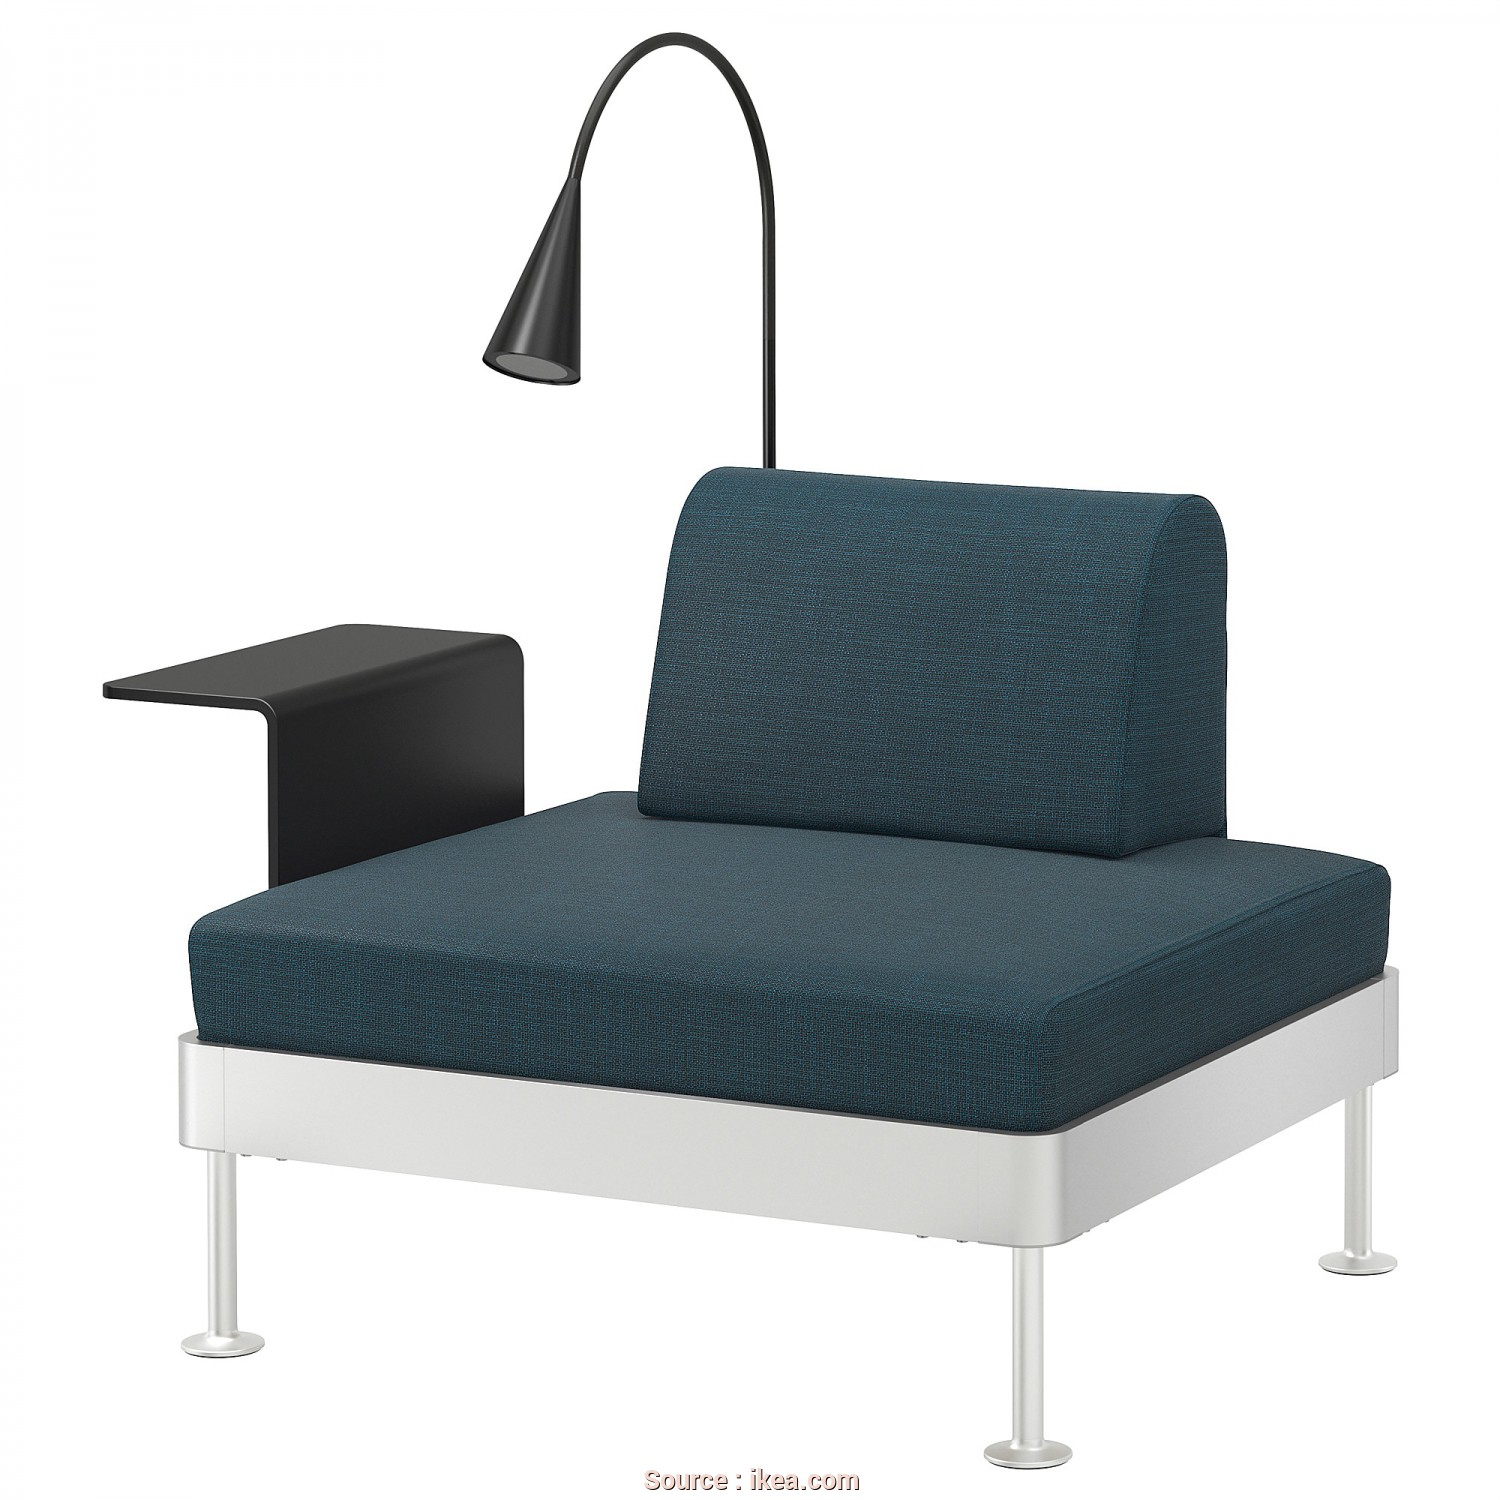 Vendo Futon Ikea, Rustico IKEA DELAKTIG Armchair With Side Table, Lamp, Zipper Makes, Cover Easy To Remove